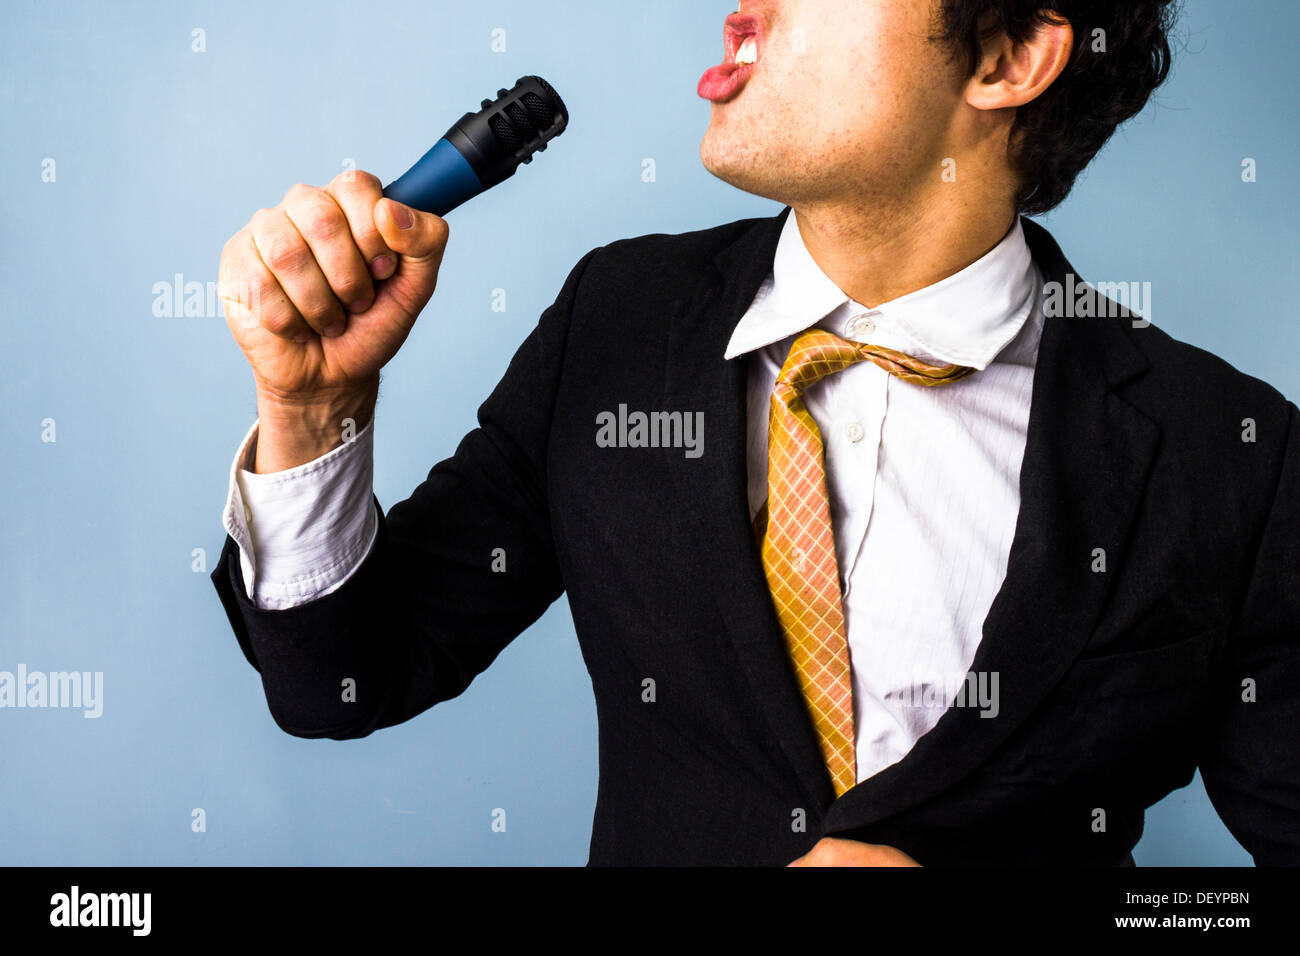 Young businessman with microphone est singing karaoke Photo Stock